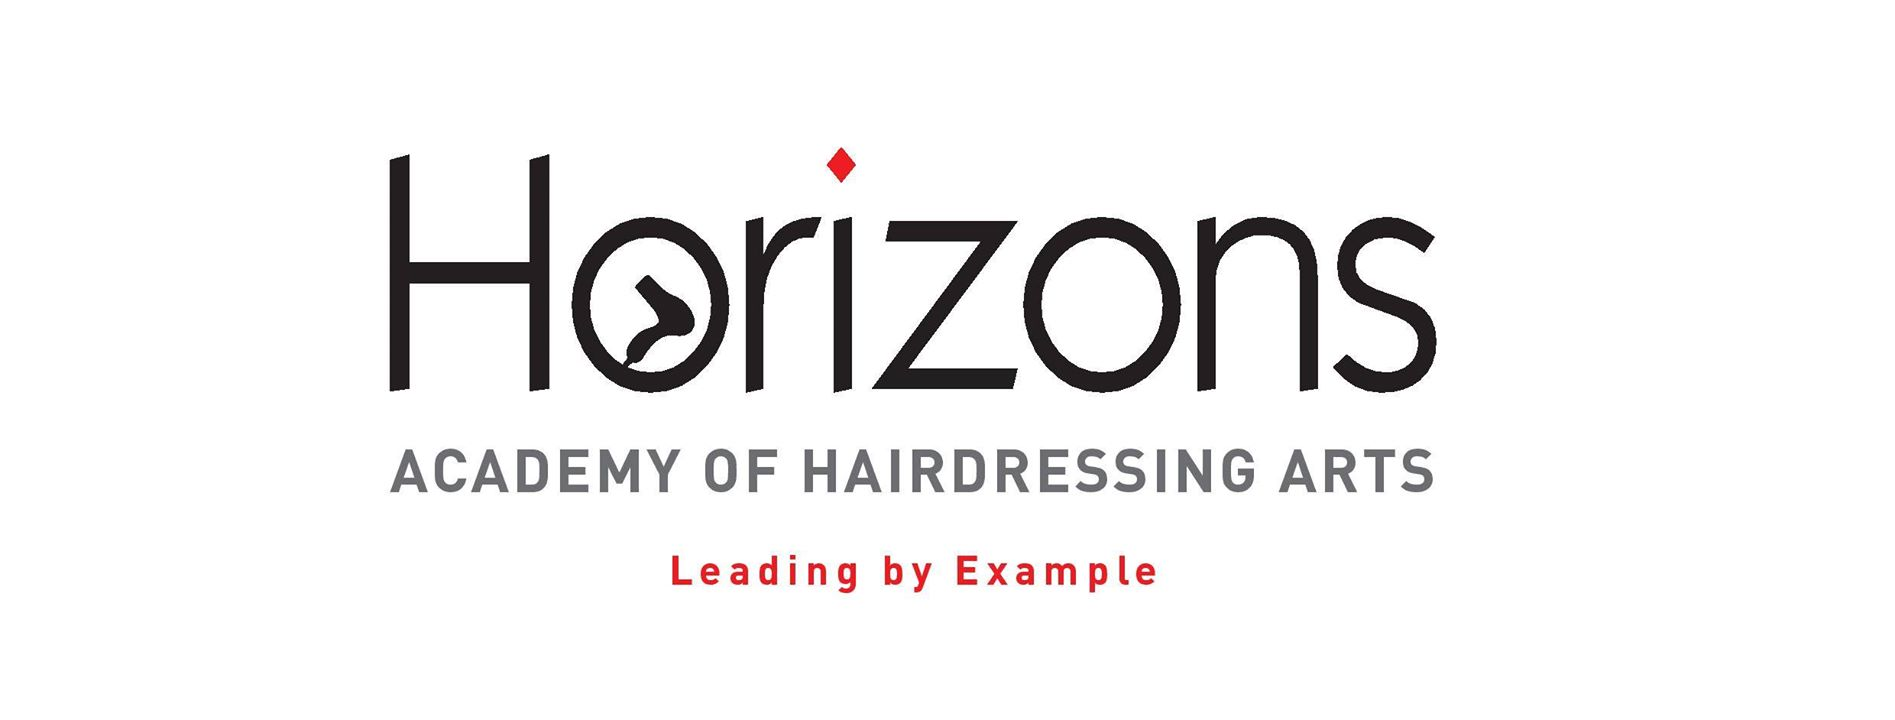 Horizons Academy Of Hairdressing Arts Cover Image on XploreCyprus